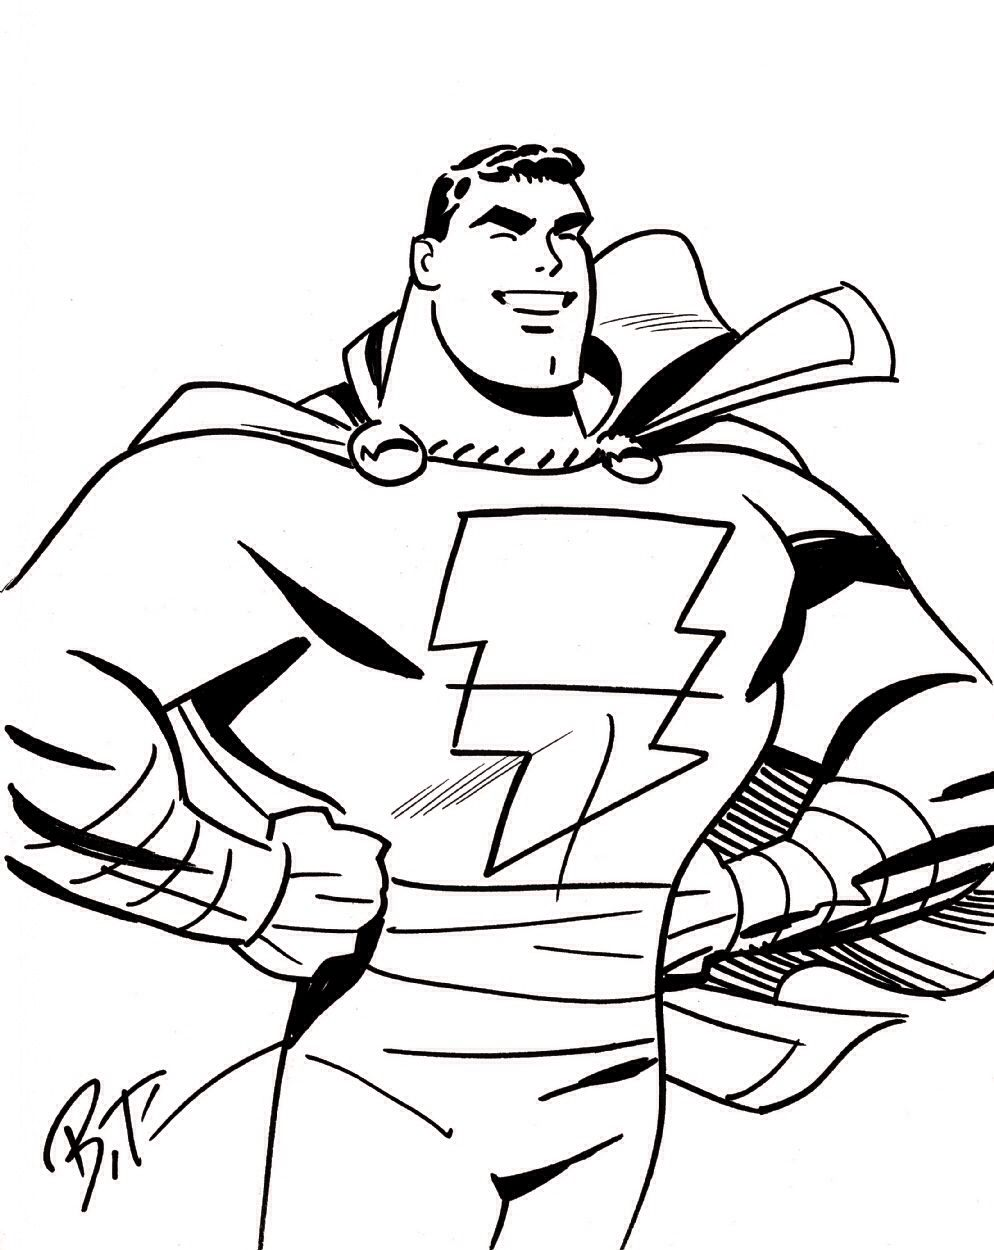 Captain Marvel Shazam Sketch By Bruce Timm Bruce Timm Captain Marvel Shazam Shazam